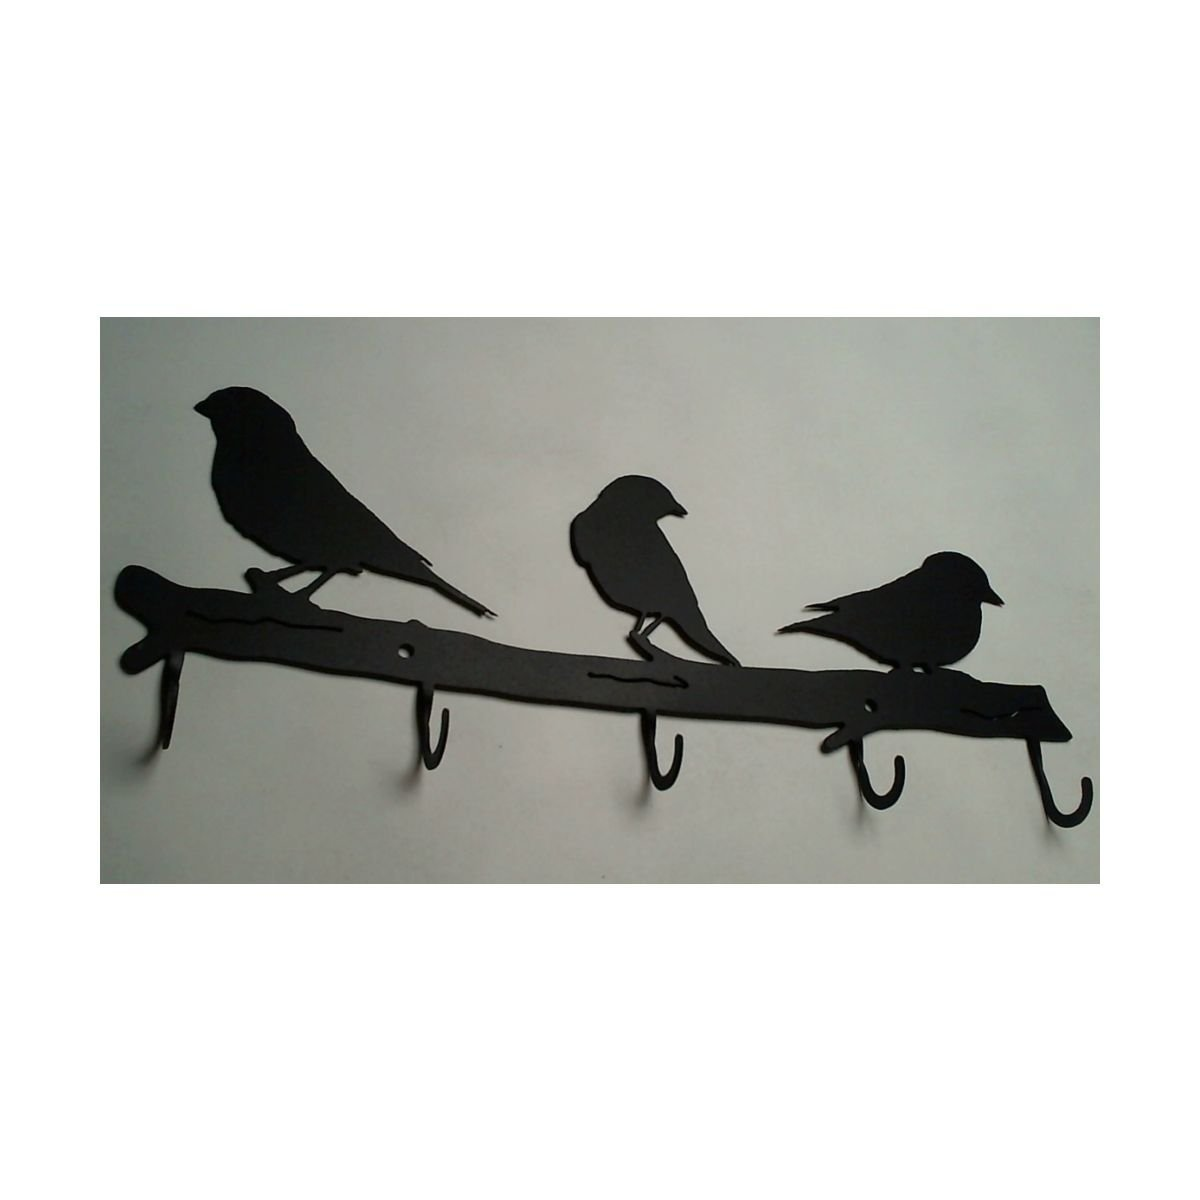 Cup/Mug Rack with hooks for Cups and Mugs, Birds on Limb